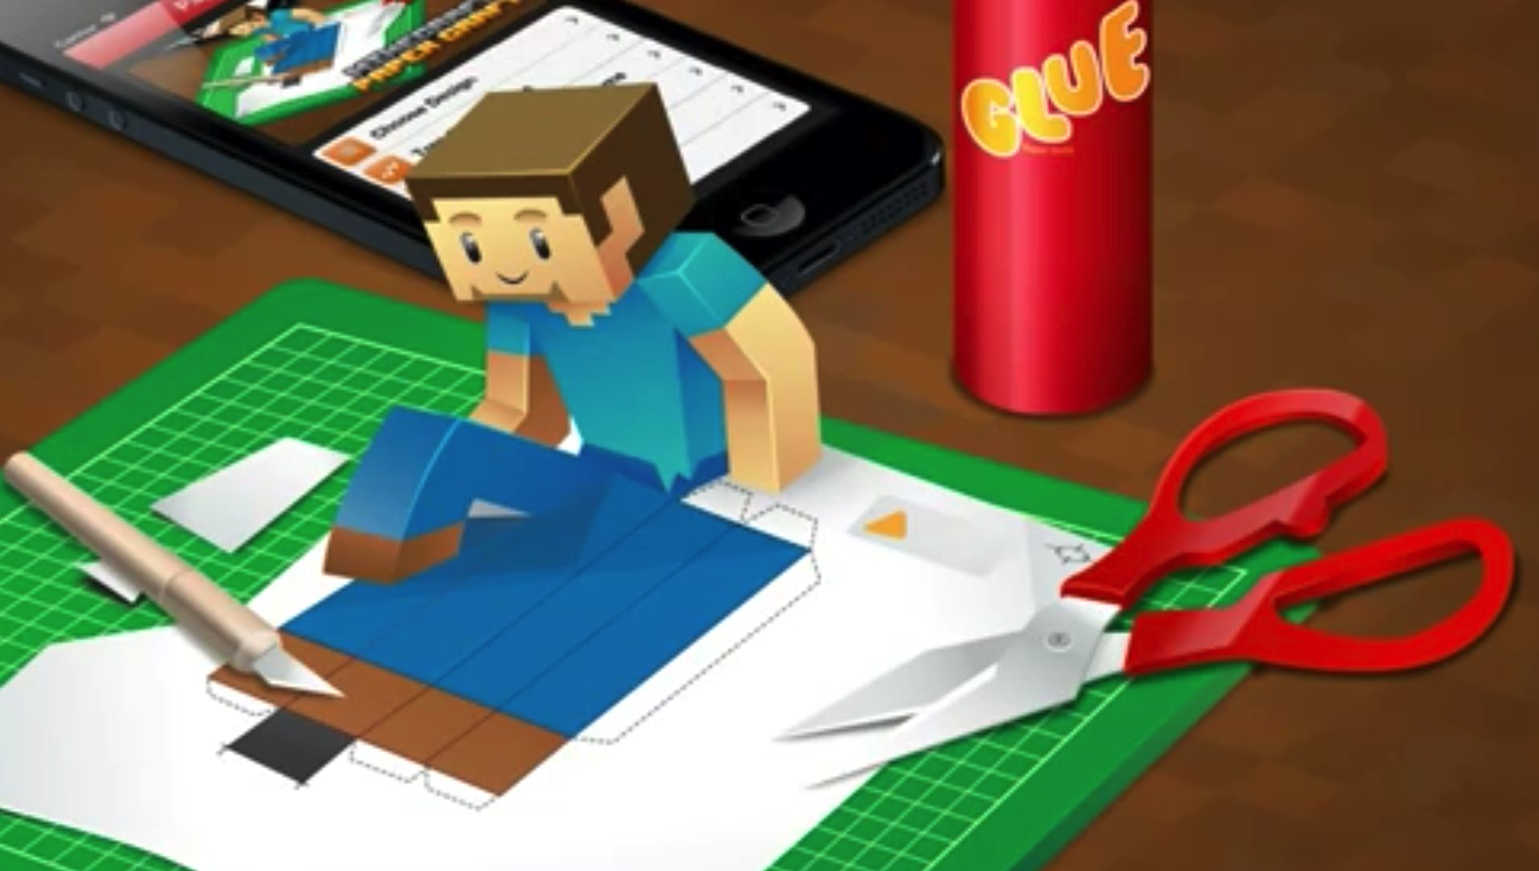 How to build a Minecraft model with the Minecraft Papercraft Studio app